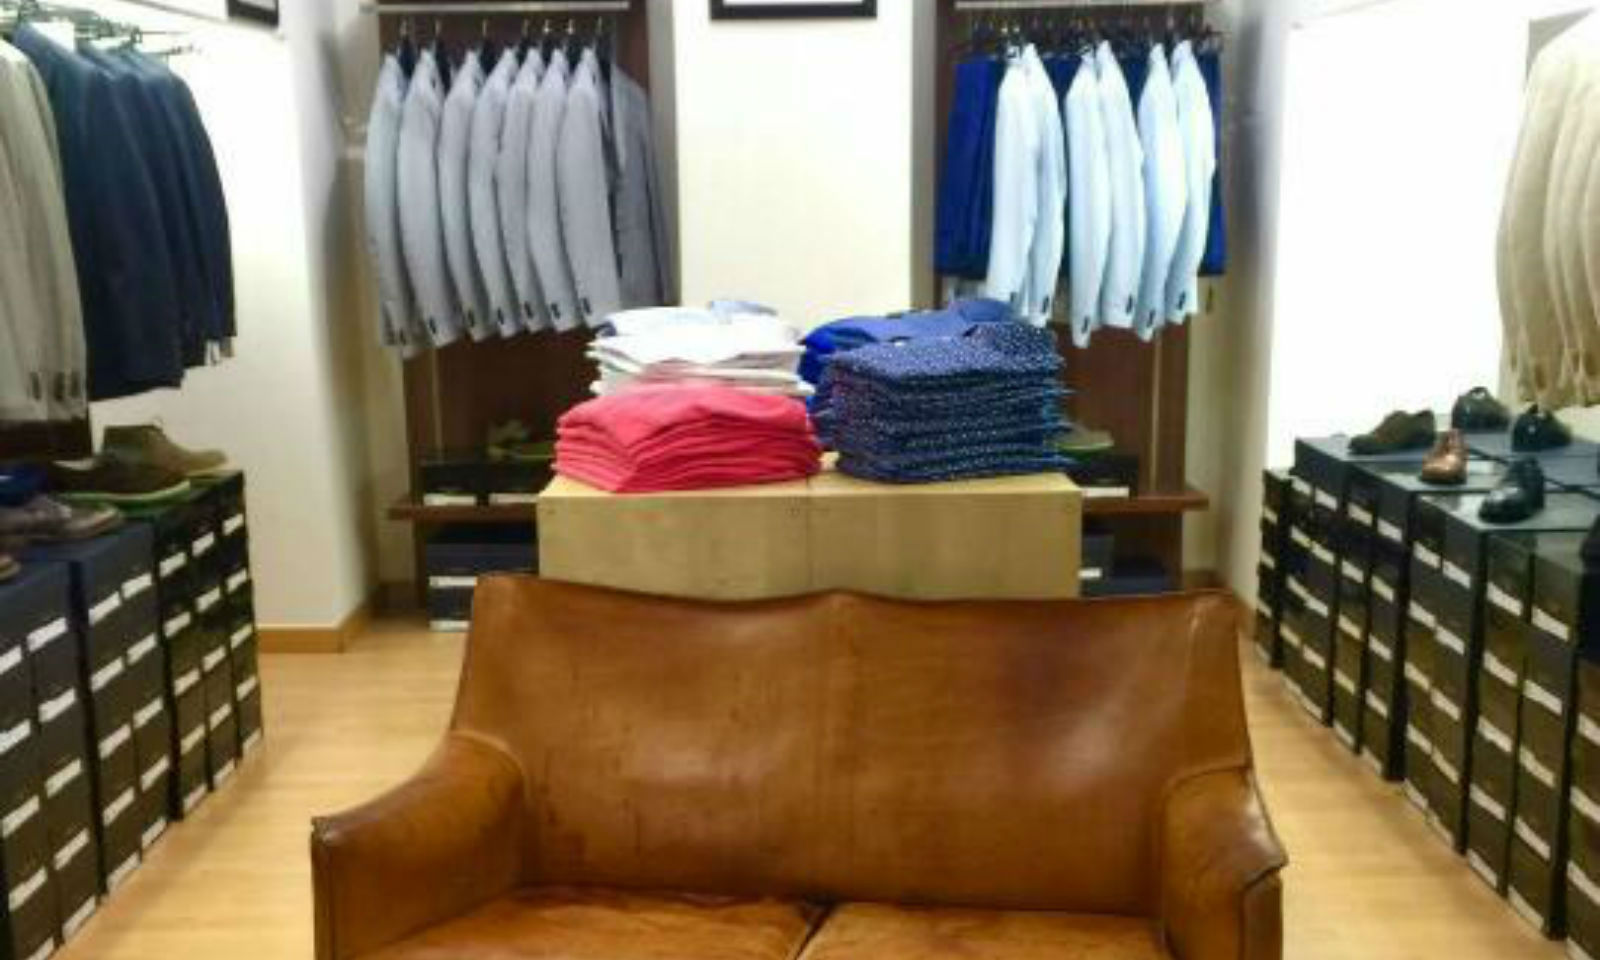 antonio fusco factory store outlet uomo milano